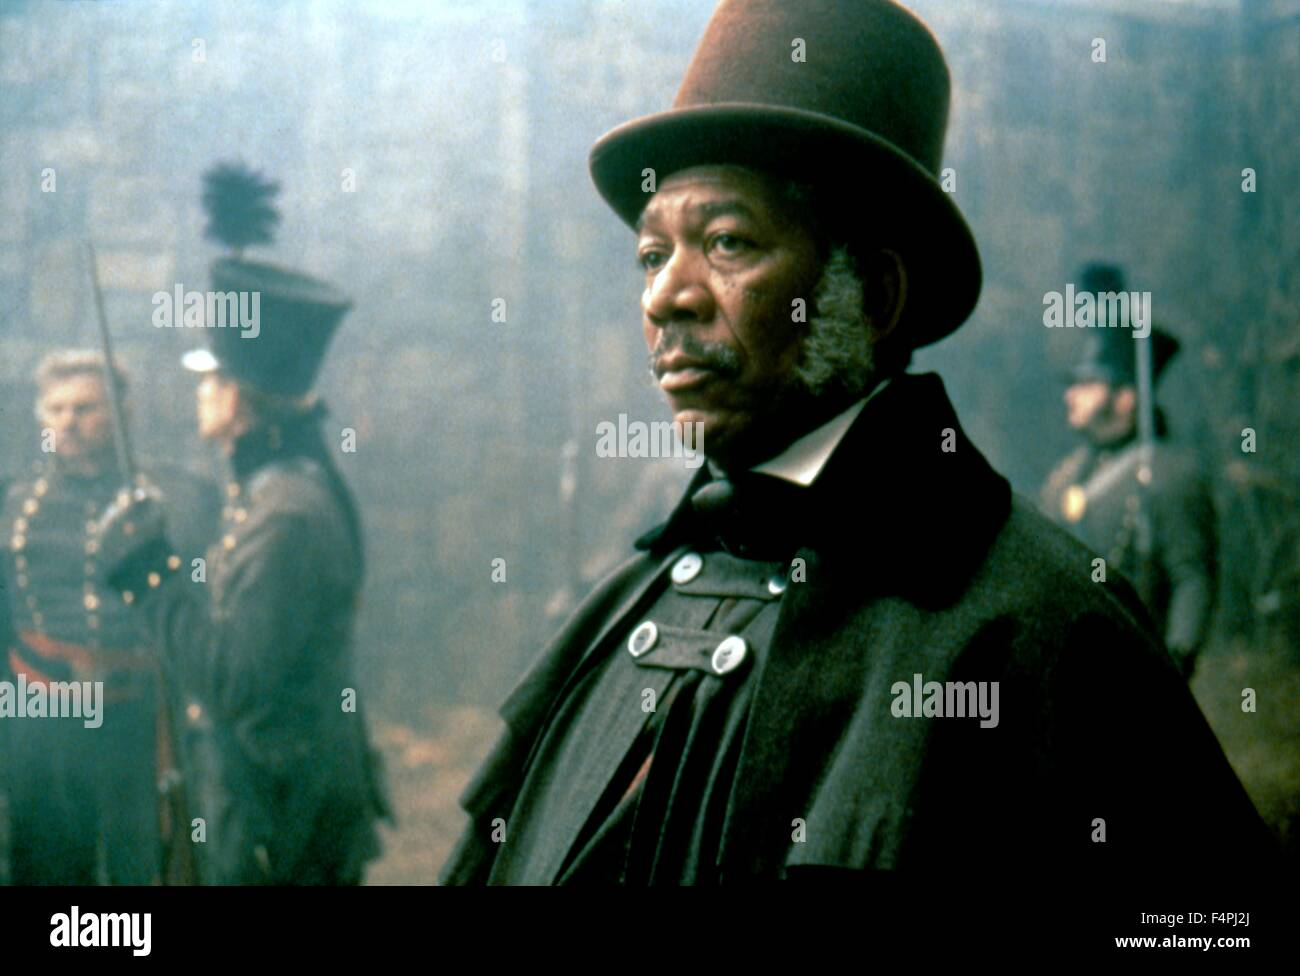 Morgan Freeman / Amistad / 1997 directed by Steven Spielberg [Dreamworks Pictures] - Stock Image